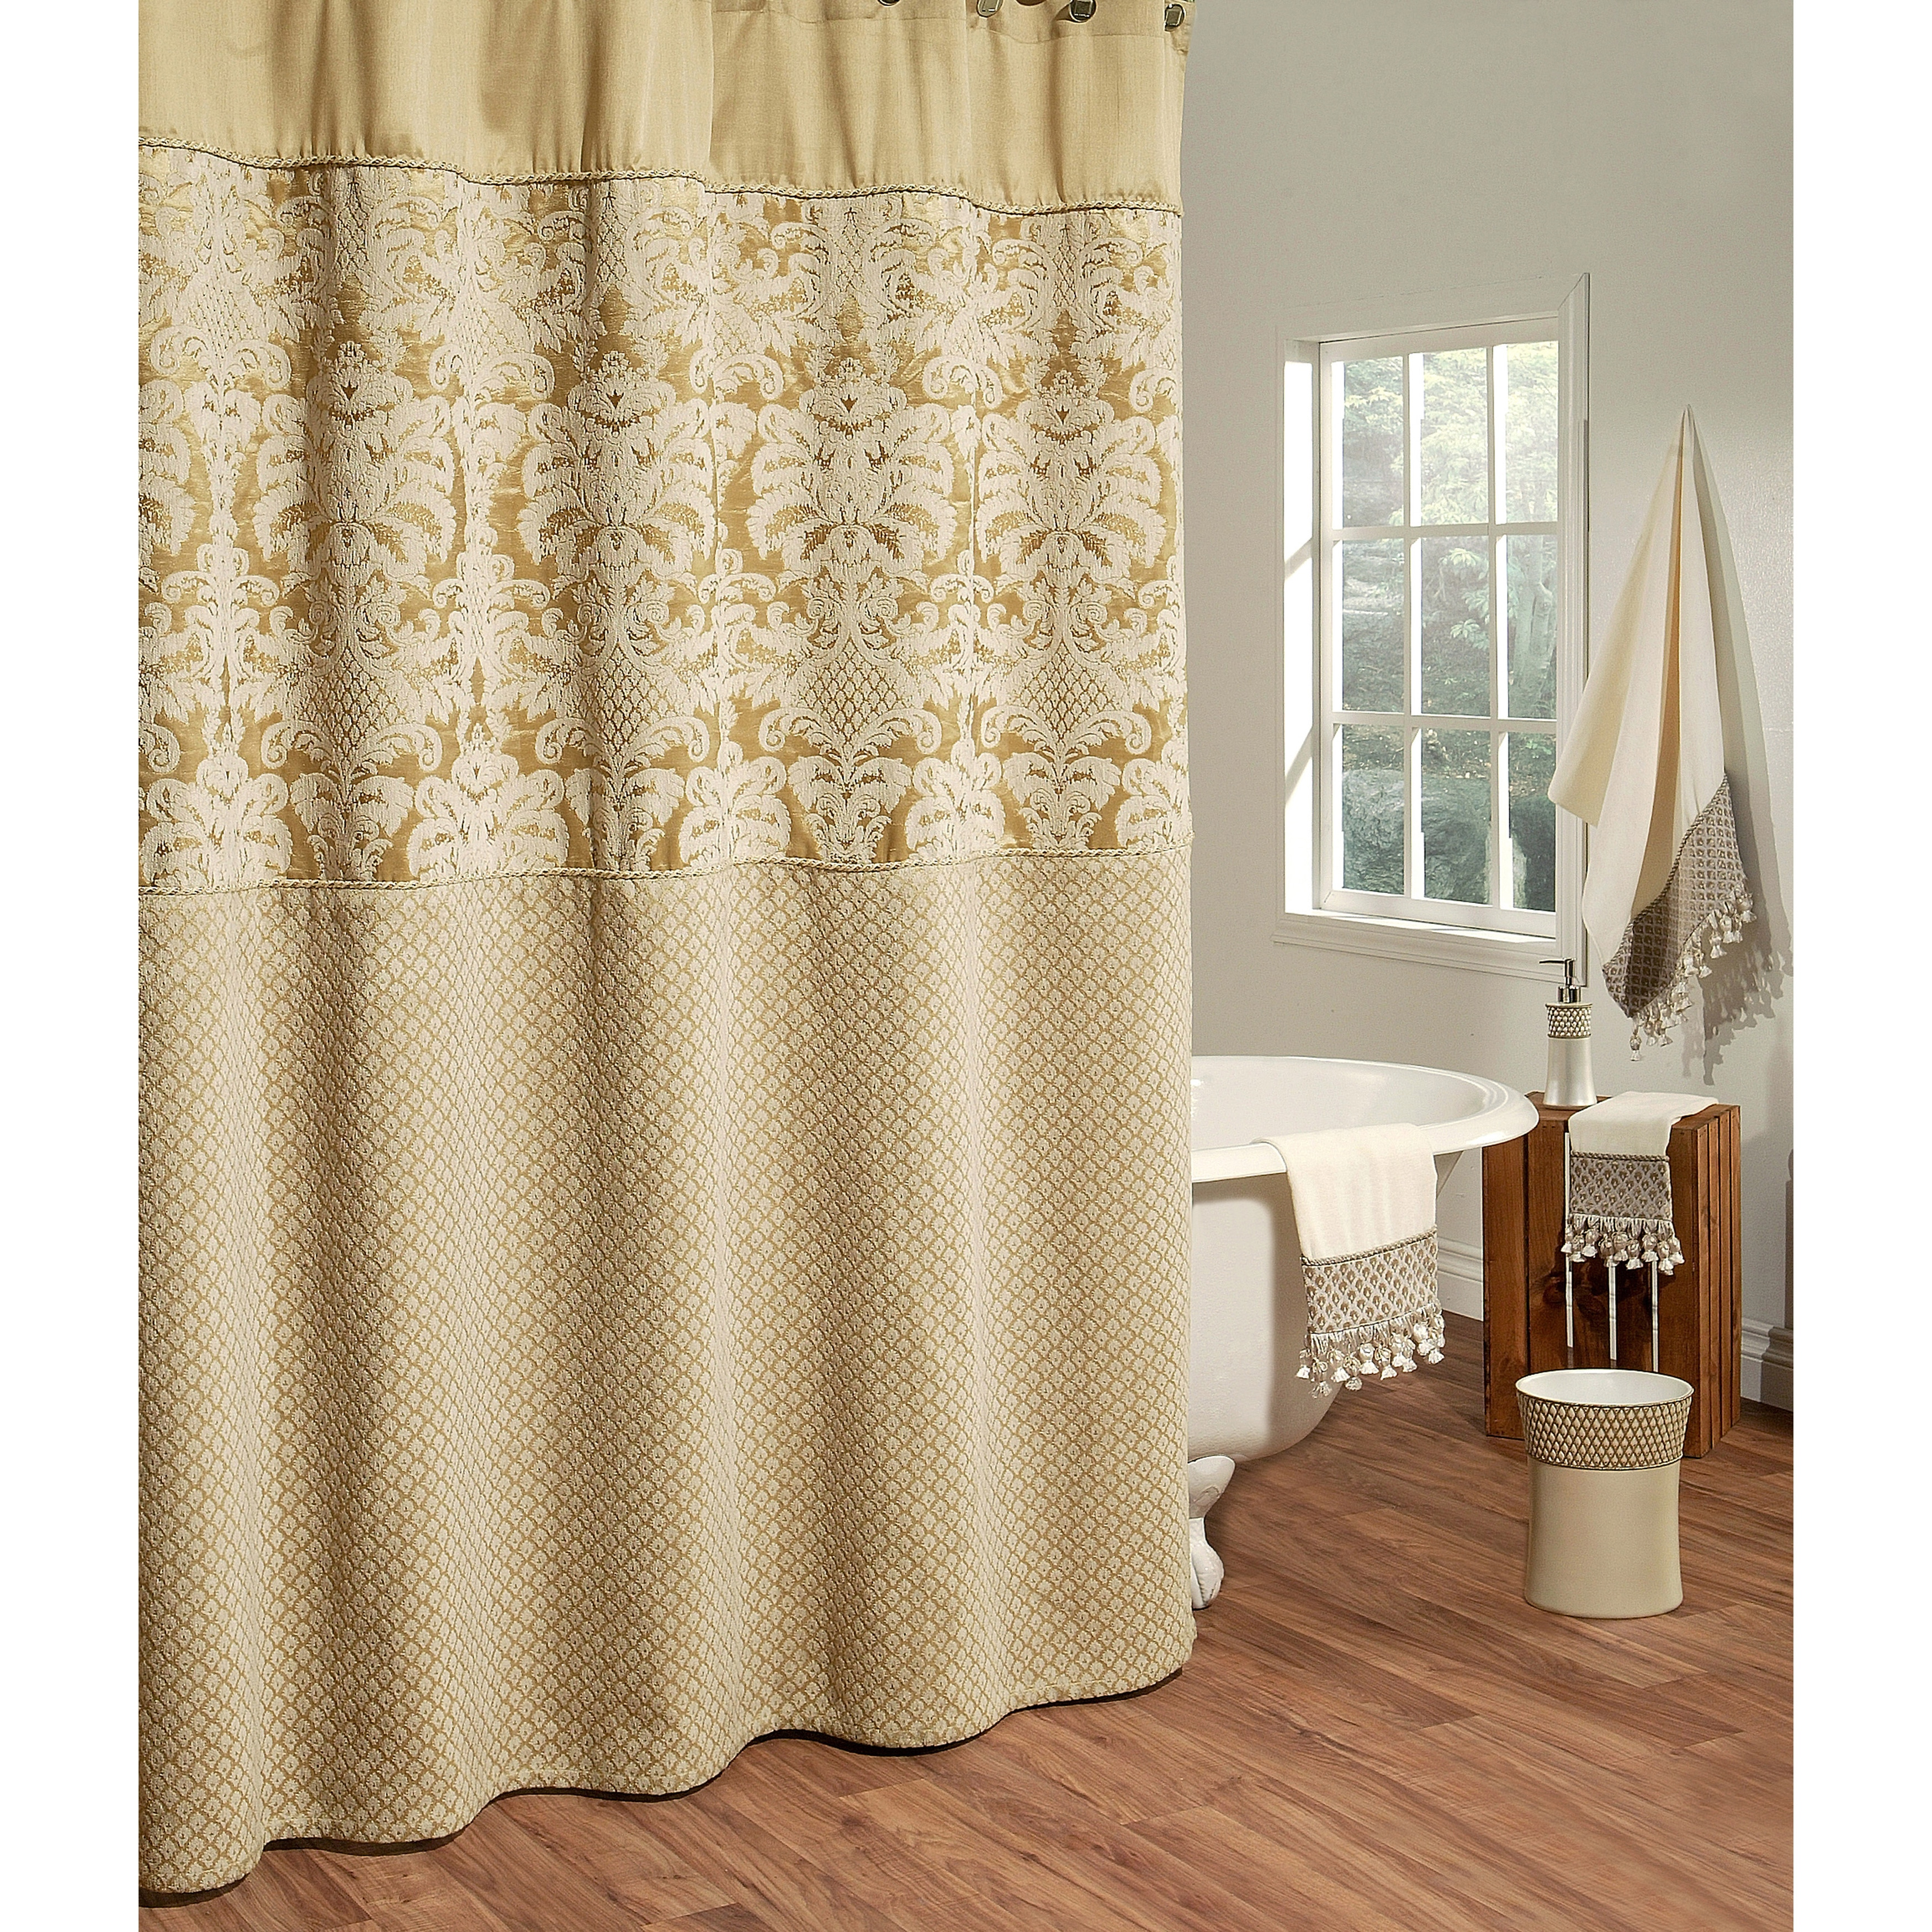 curtain design beautiful awesome elegant shower curtains size french of full alternative waverly lovely